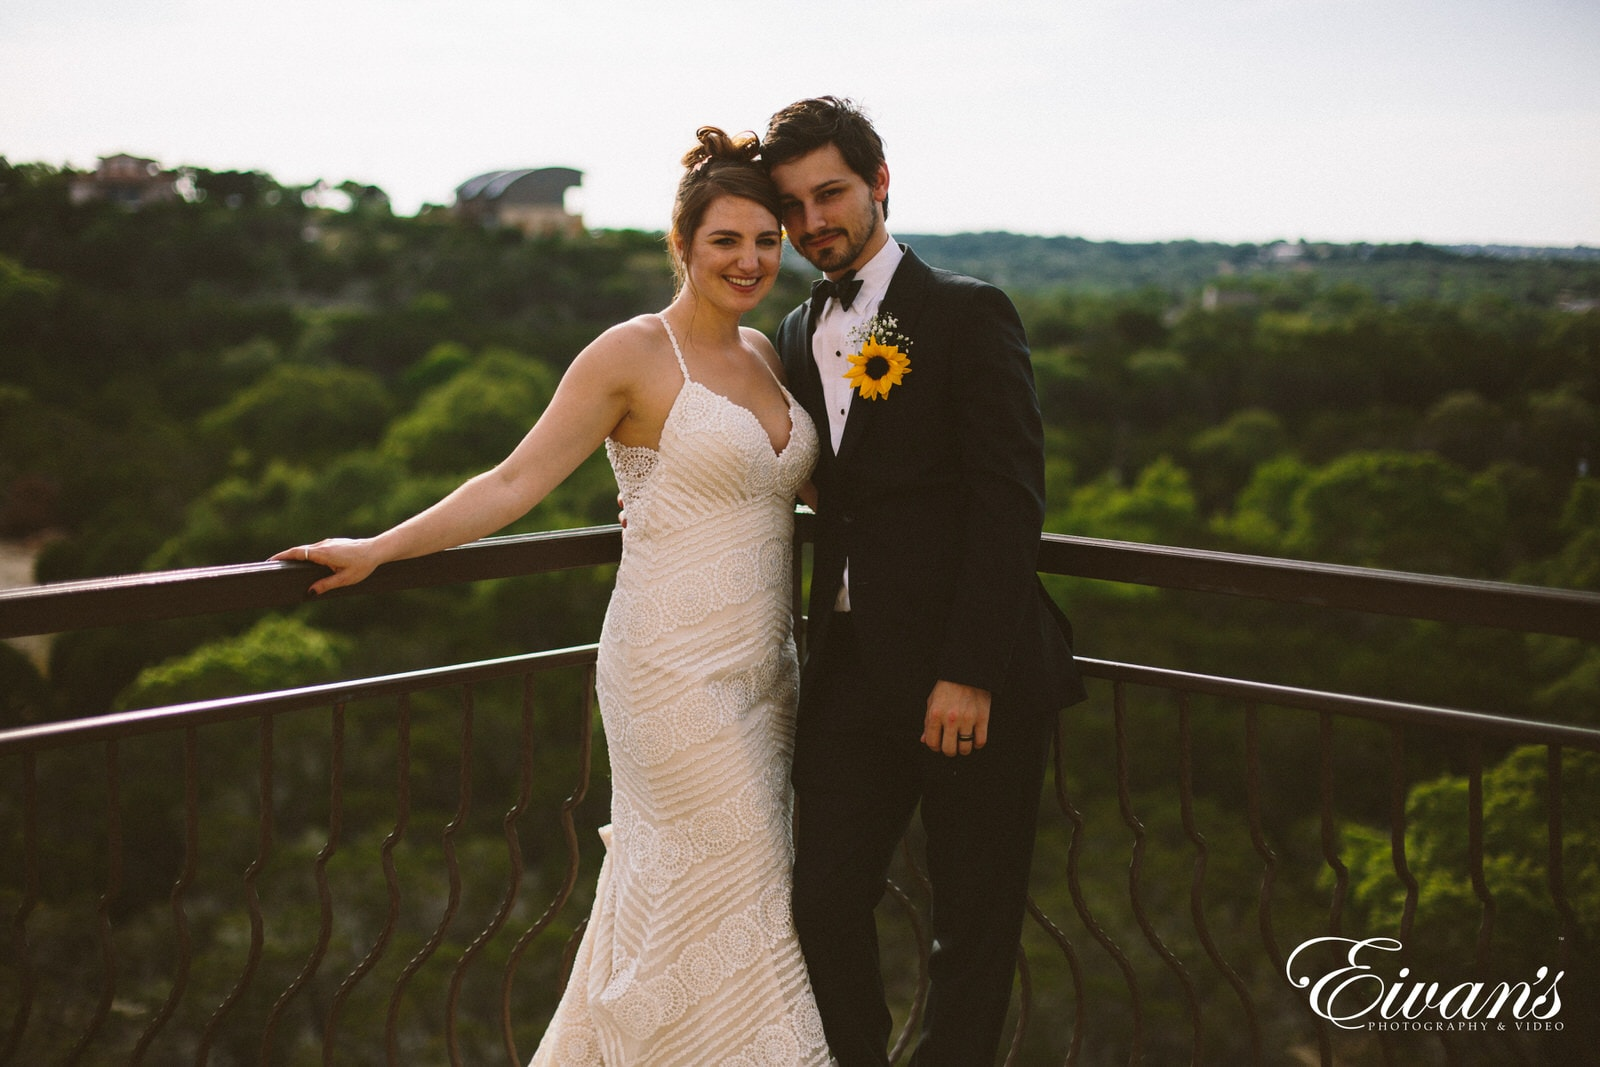 man in black suit and woman in white wedding dress holding on railings during daytime